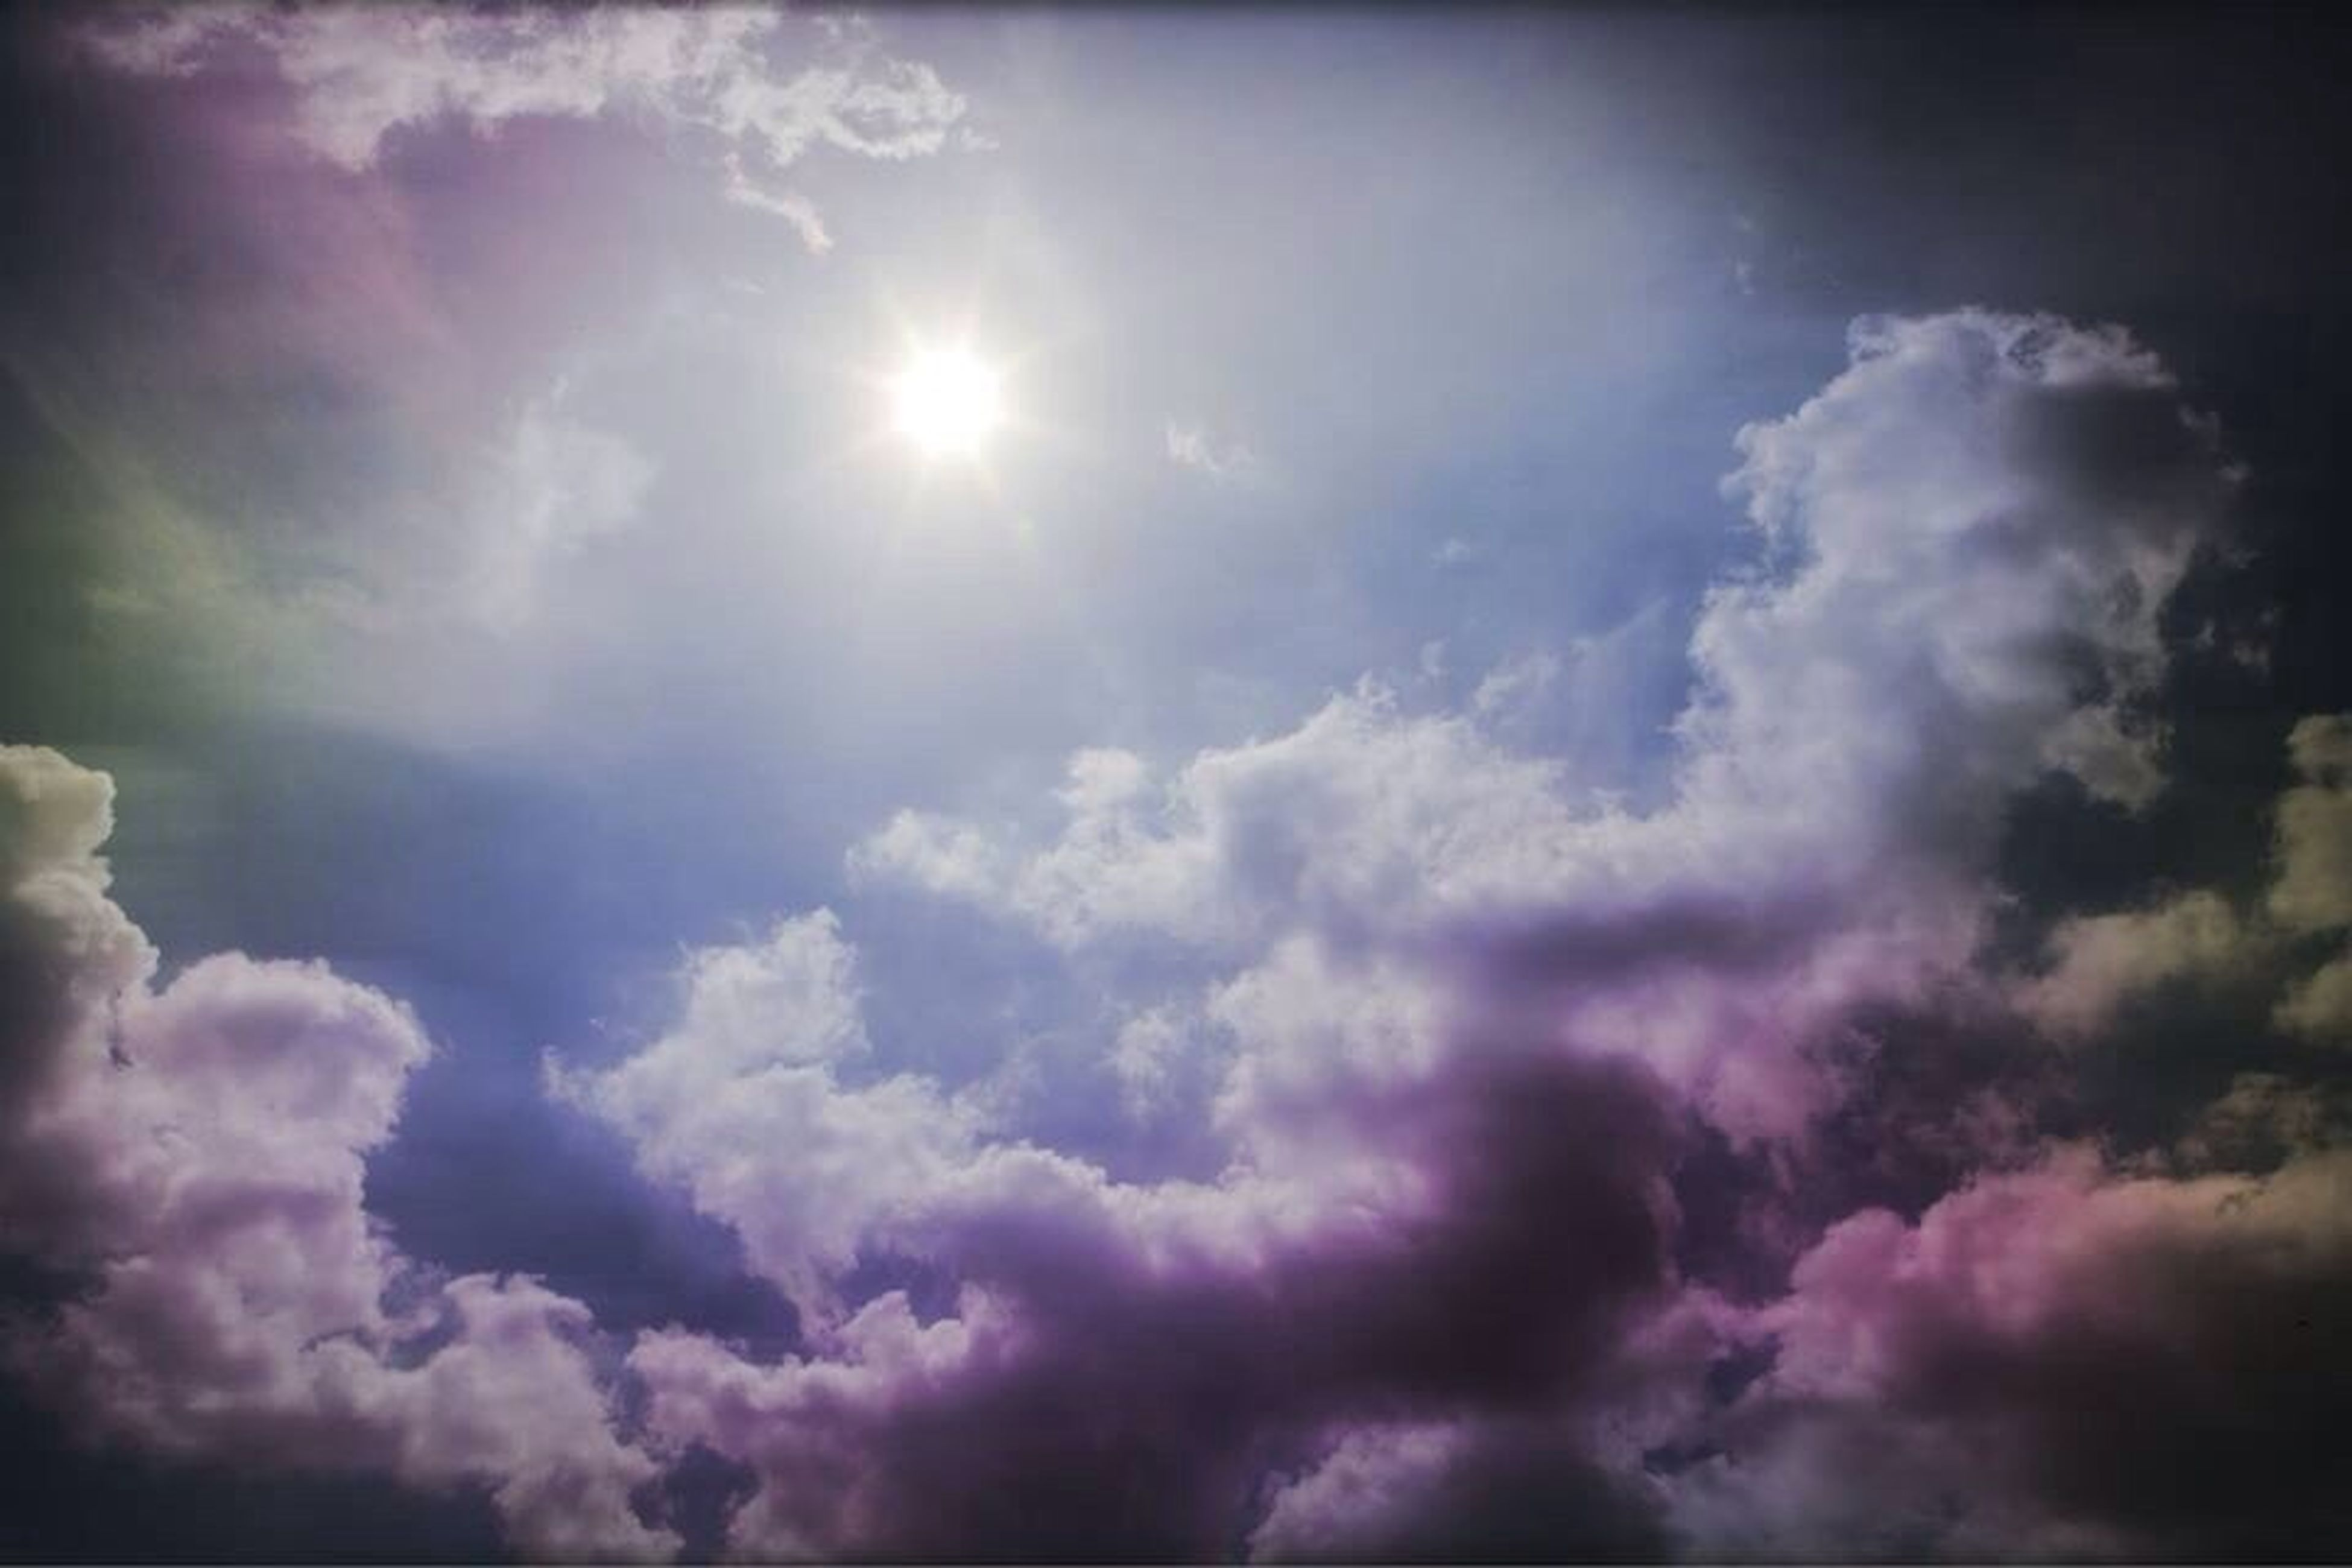 sky, cloud - sky, low angle view, sky only, beauty in nature, cloudy, tranquility, sun, scenics, sunbeam, cloudscape, nature, tranquil scene, cloud, sunlight, weather, idyllic, backgrounds, majestic, outdoors